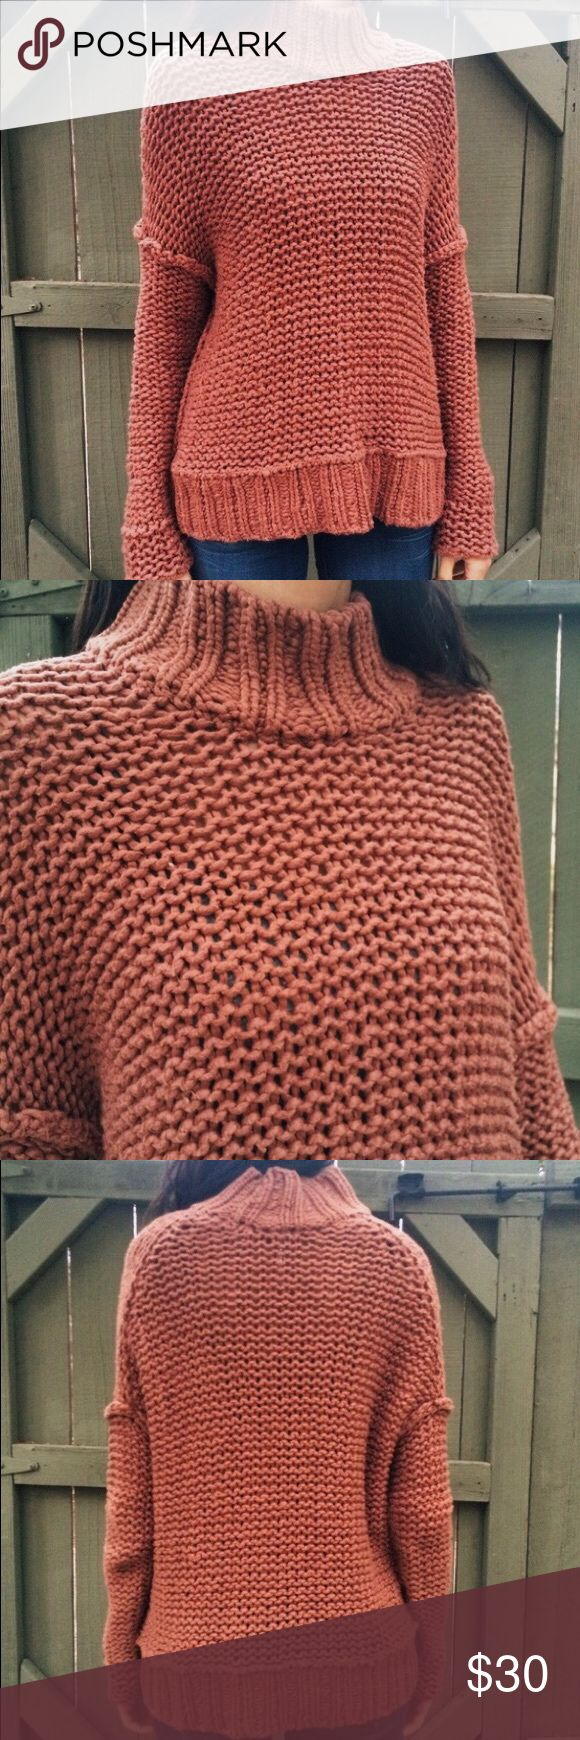 Free People Chunky Knit Turtleneck in Brick Beautiful and cozy! Very warm knit sweater with minor pilling/wear. Priced accordingly. Pretty reddish brick color! Free People Sweaters Cowl & Turtlenecks